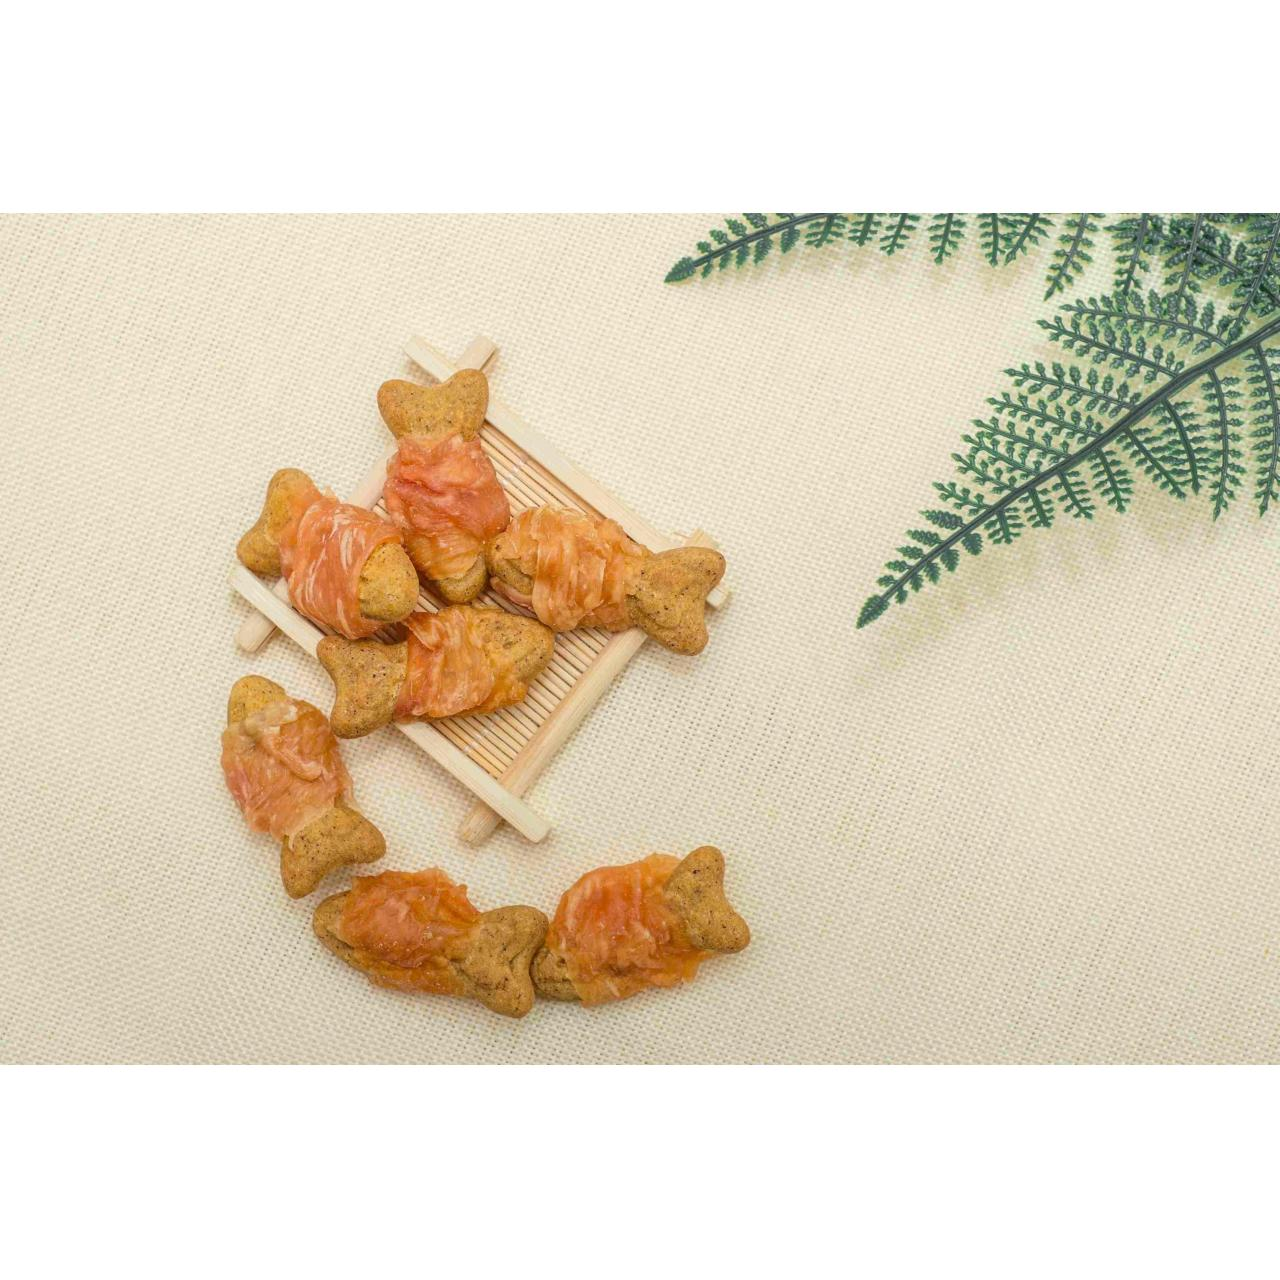 Chicken Wrapped Fish Shape Biscuit